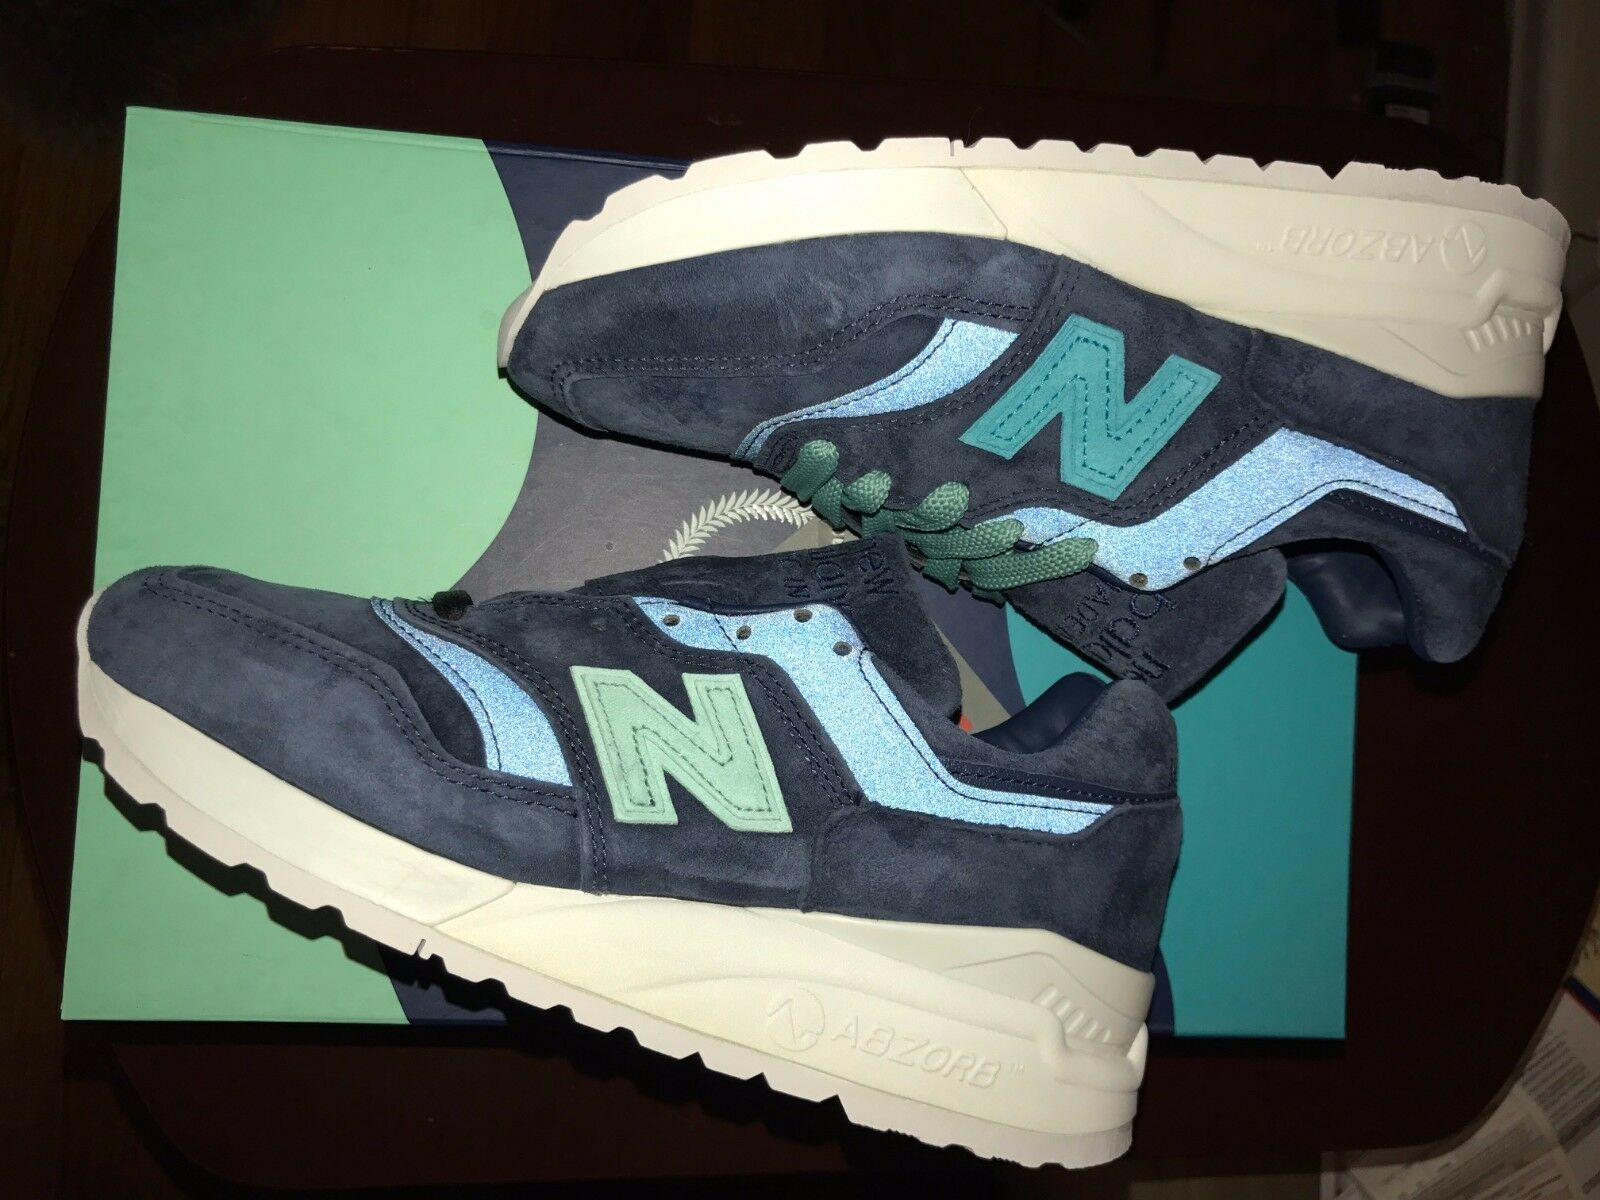 DS NEW BALANCE 997.5 MYKONOS CYCLADES RONNIE FIEG Taille 5 RARE